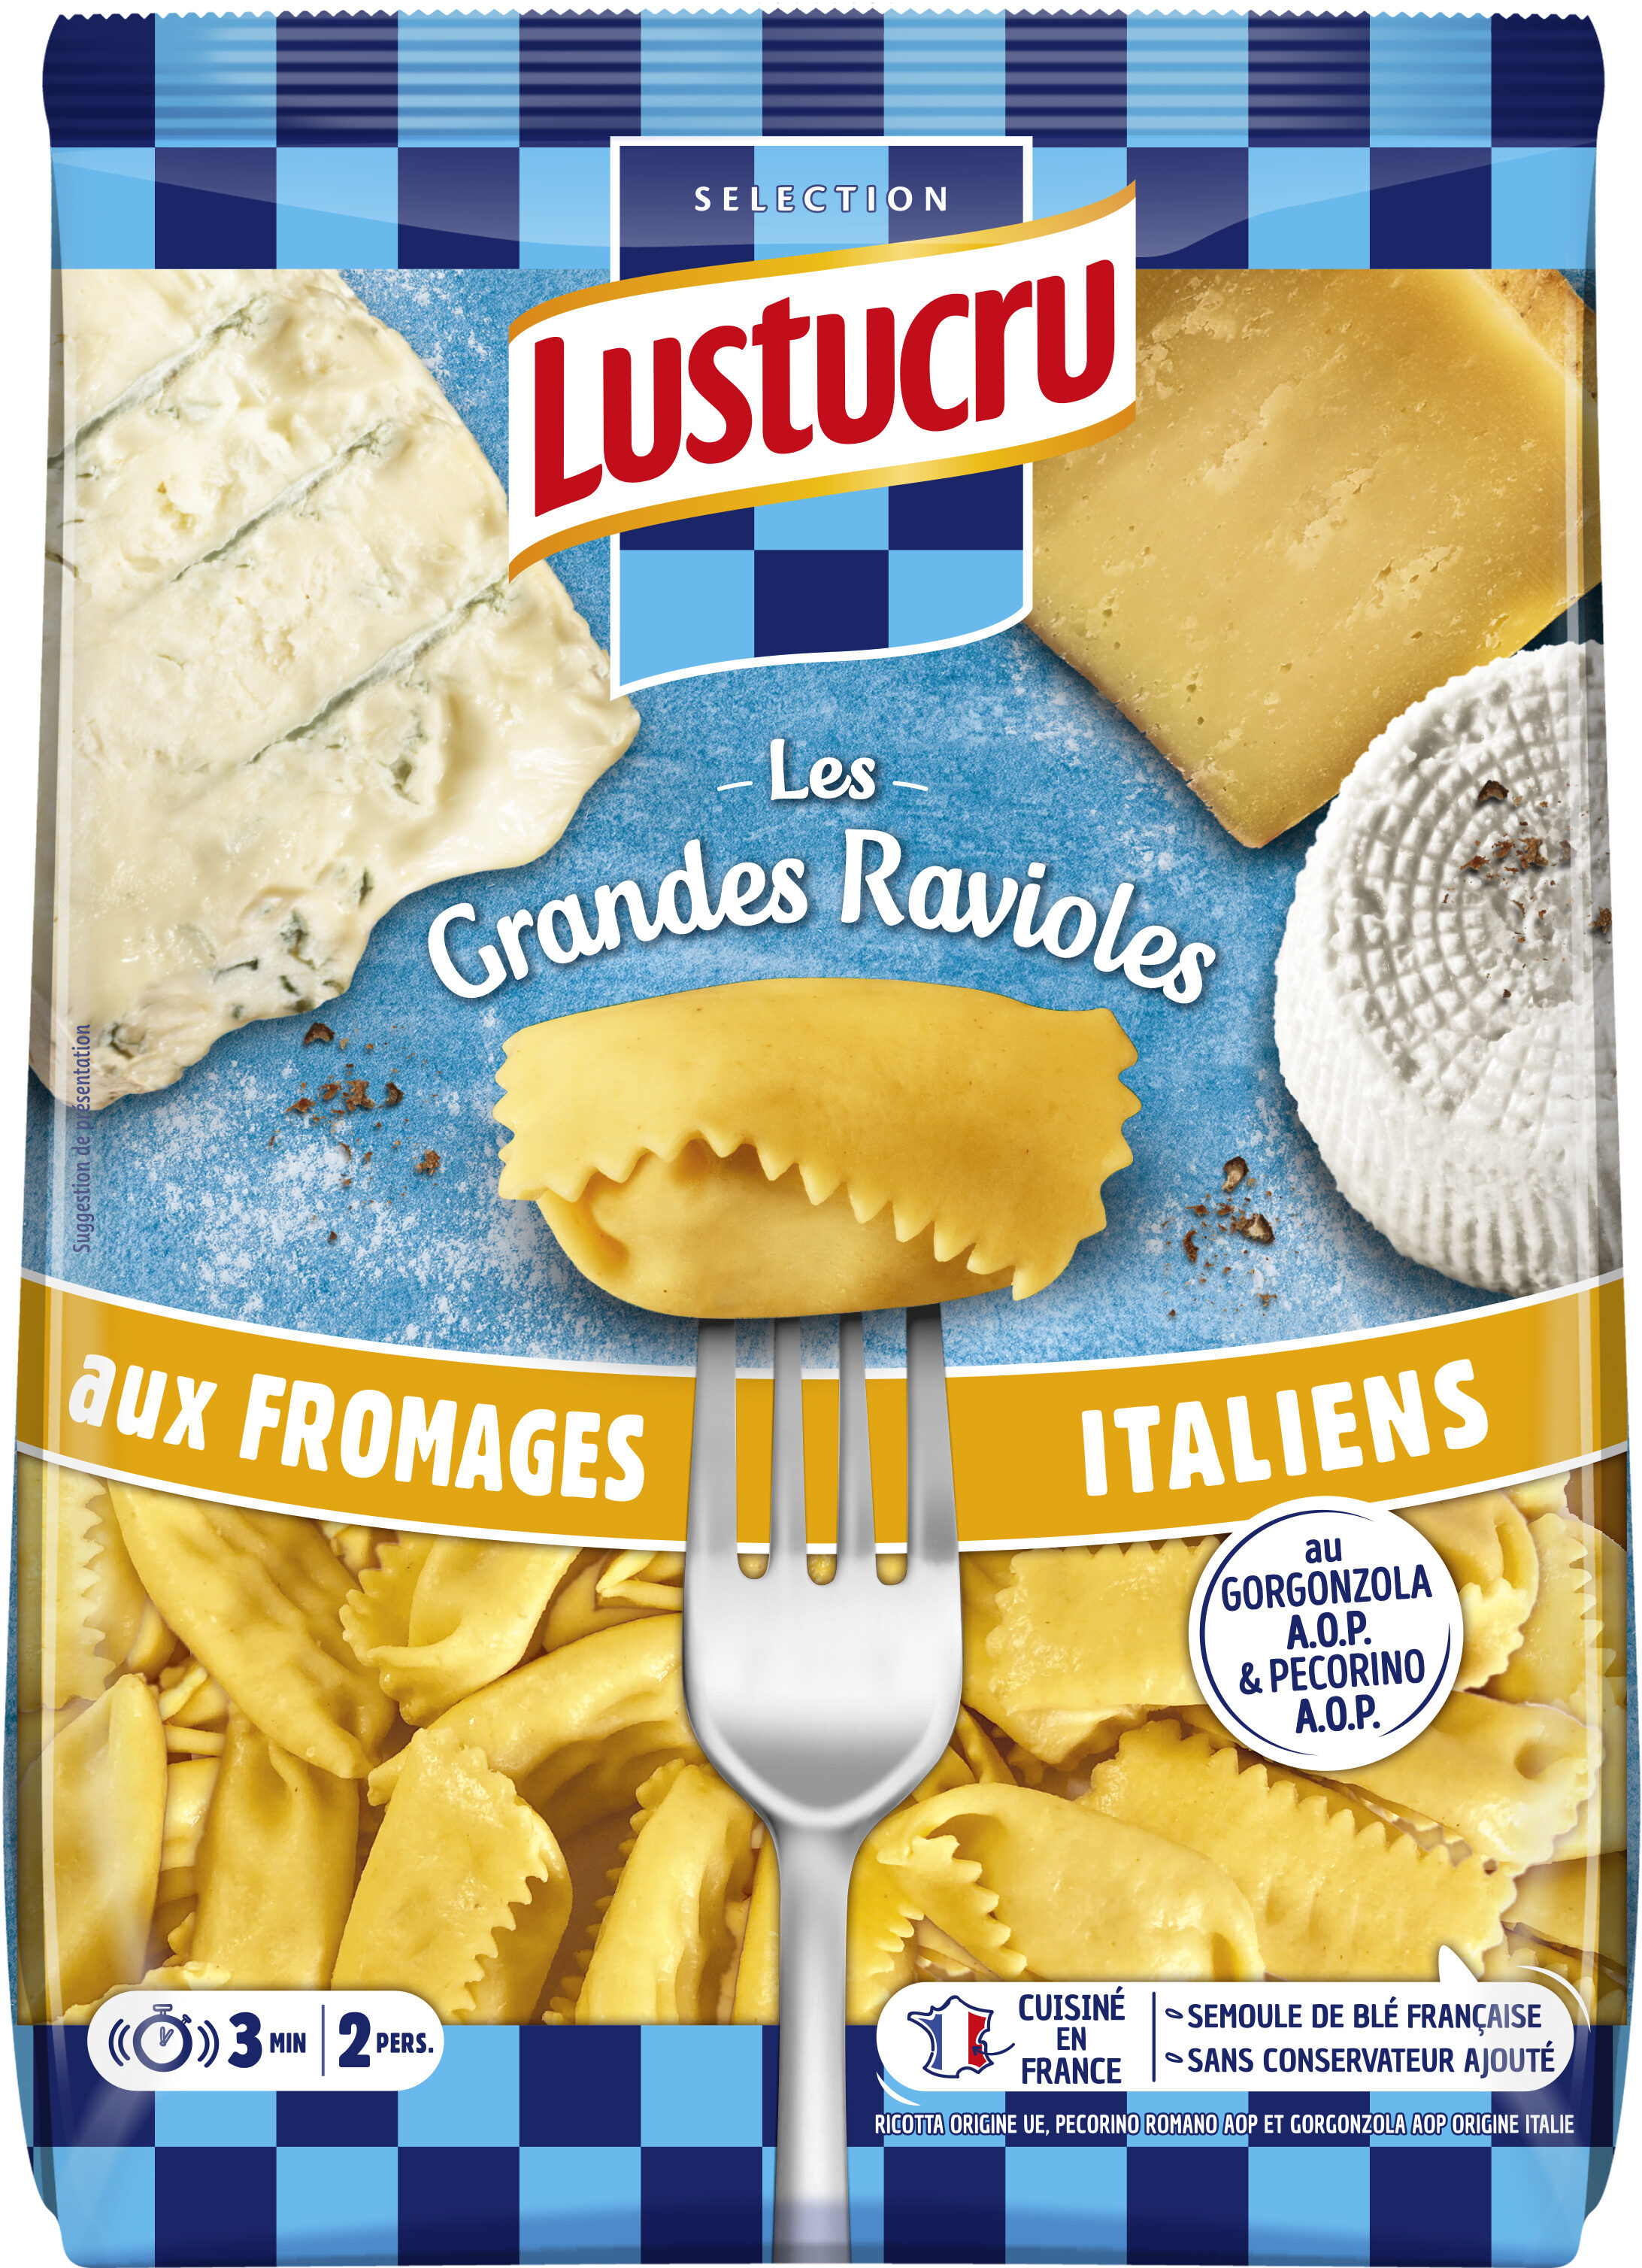 Lustucru grandes ravioles 3 fromages italiens - Prodotto - fr